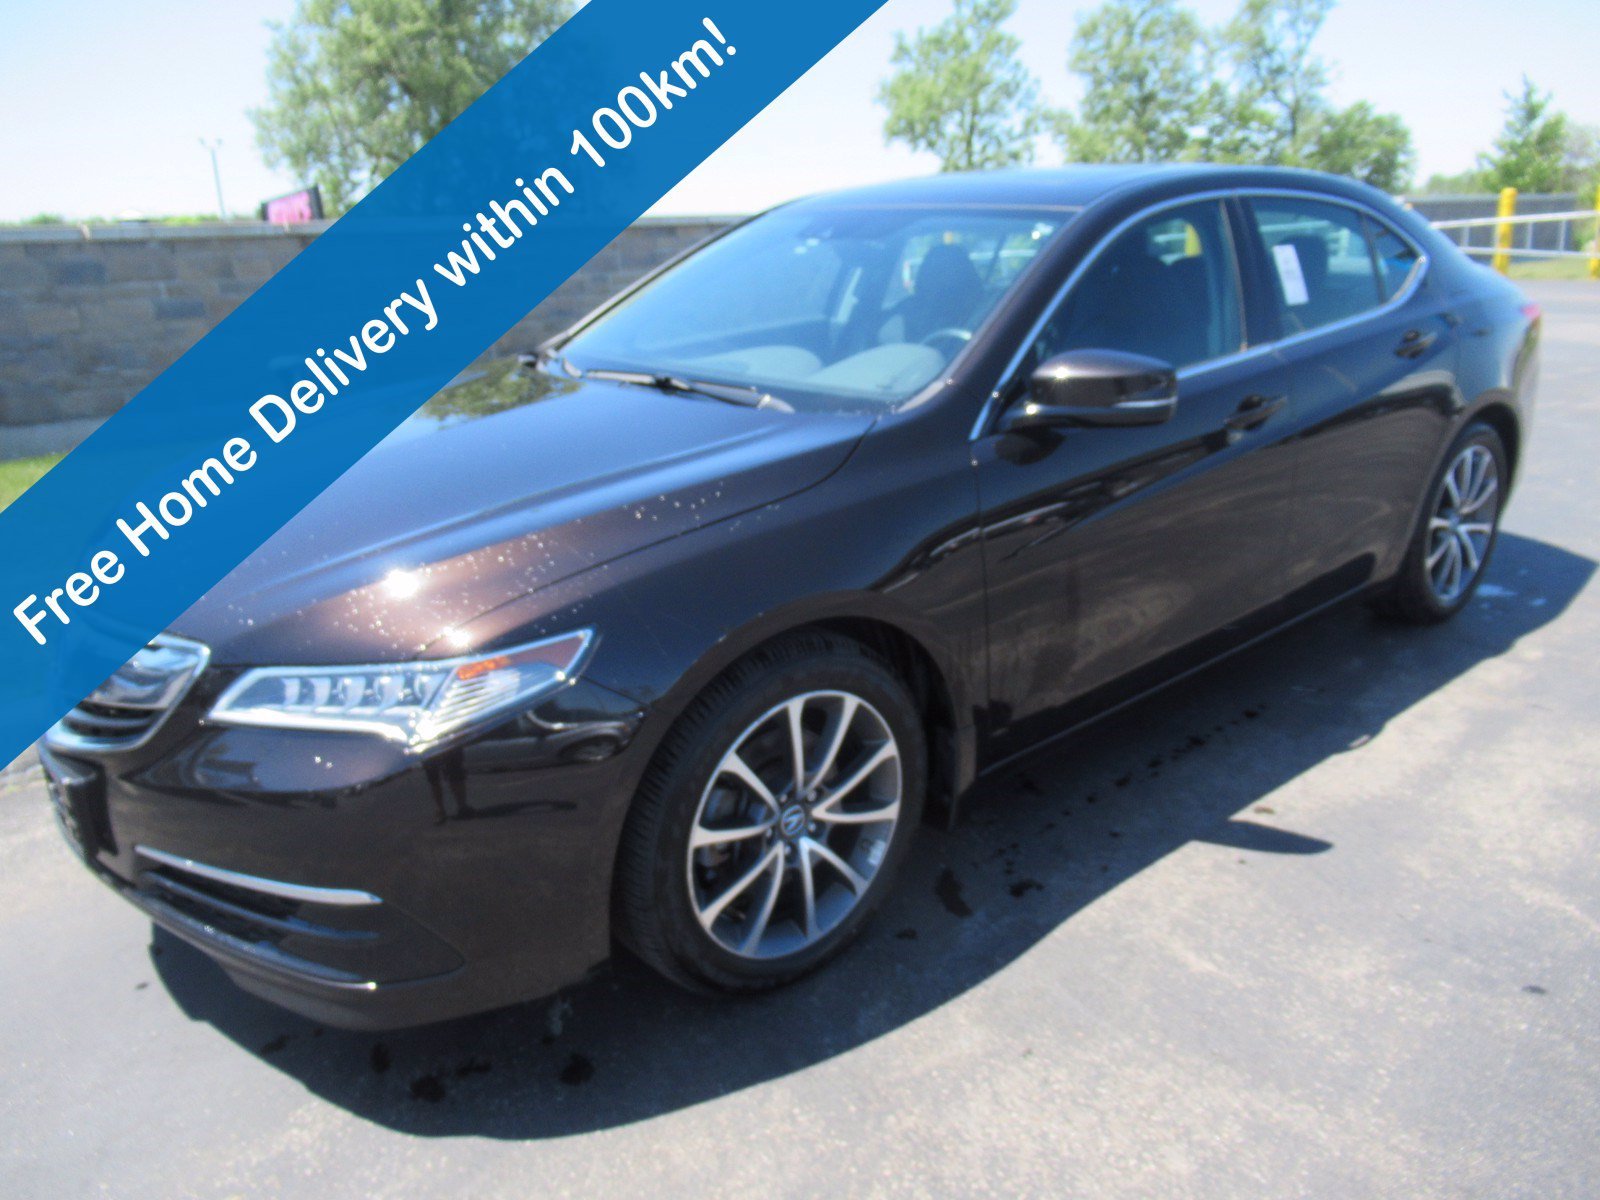 Certified Pre-Owned 2017 Acura TLX V6 Tech AWD, Leather, Sunroof, Heated + Memory Seat, Rear Camera, Bluetooth & More!